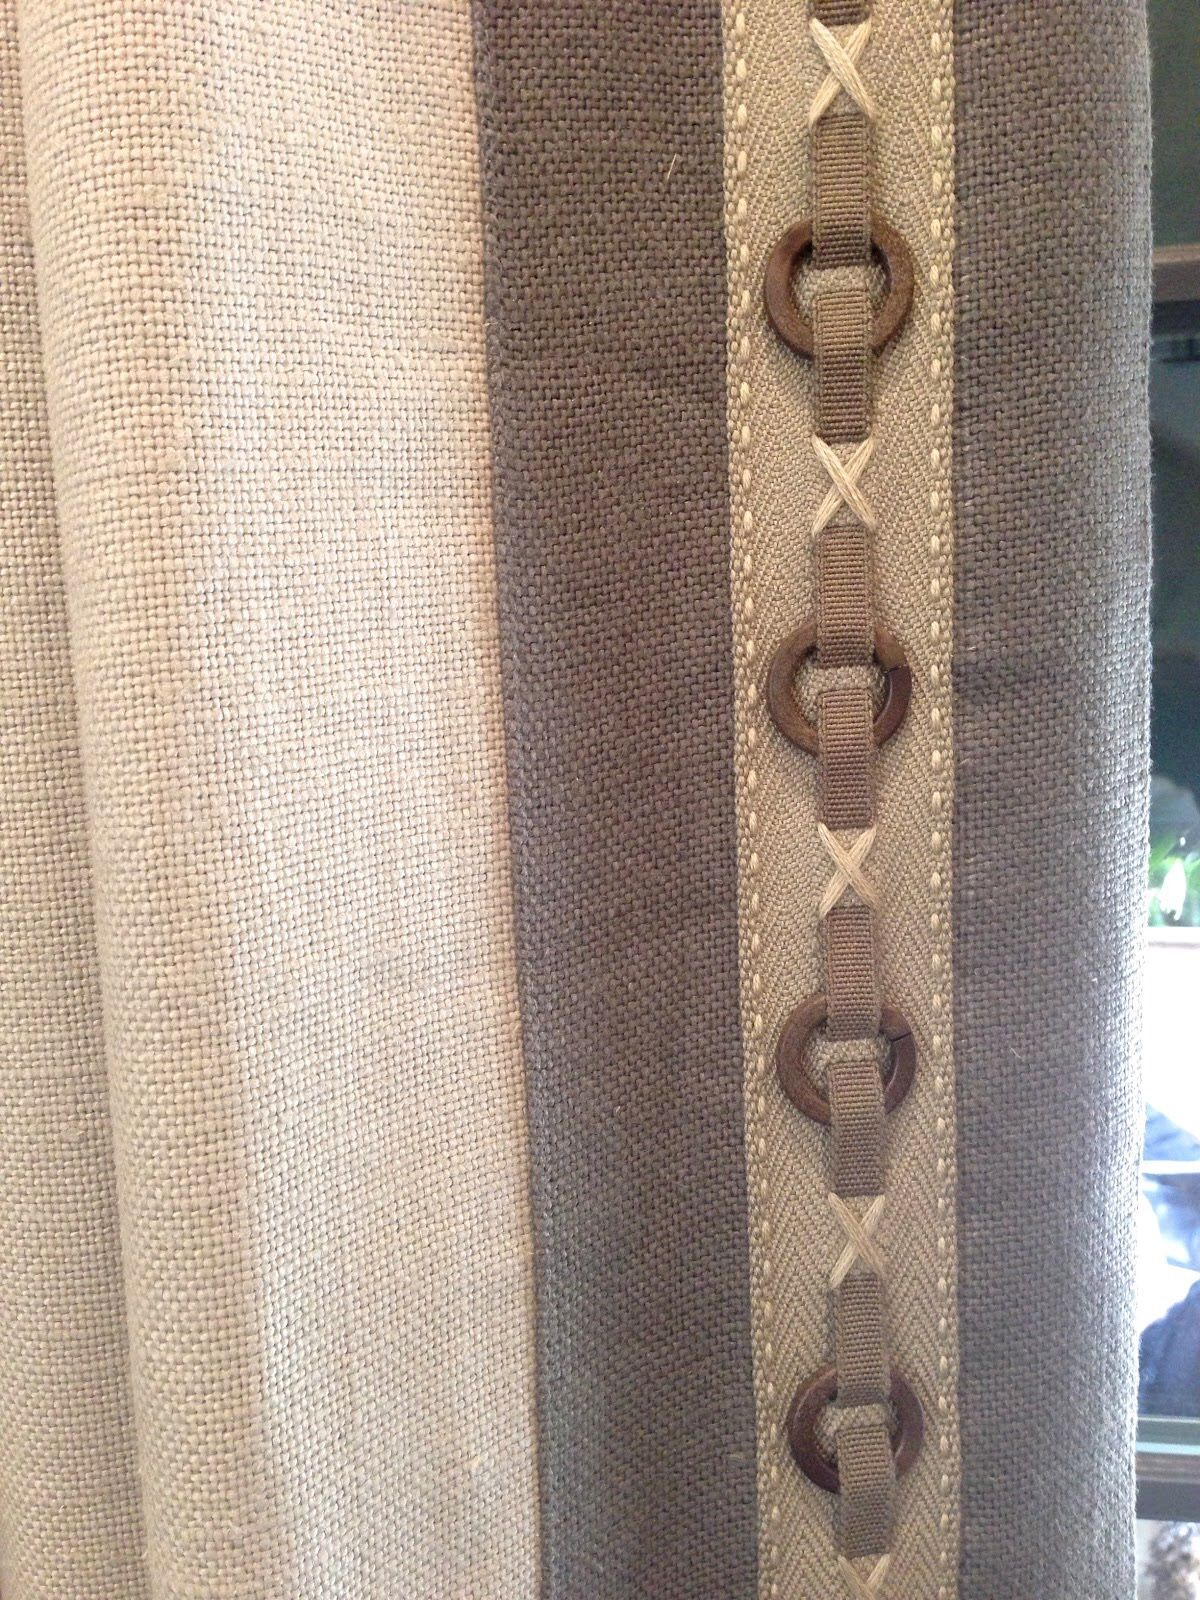 exquisitely bordered trim dresses up rustic fabric draperies drapery detail at the serenbe designer showhouse